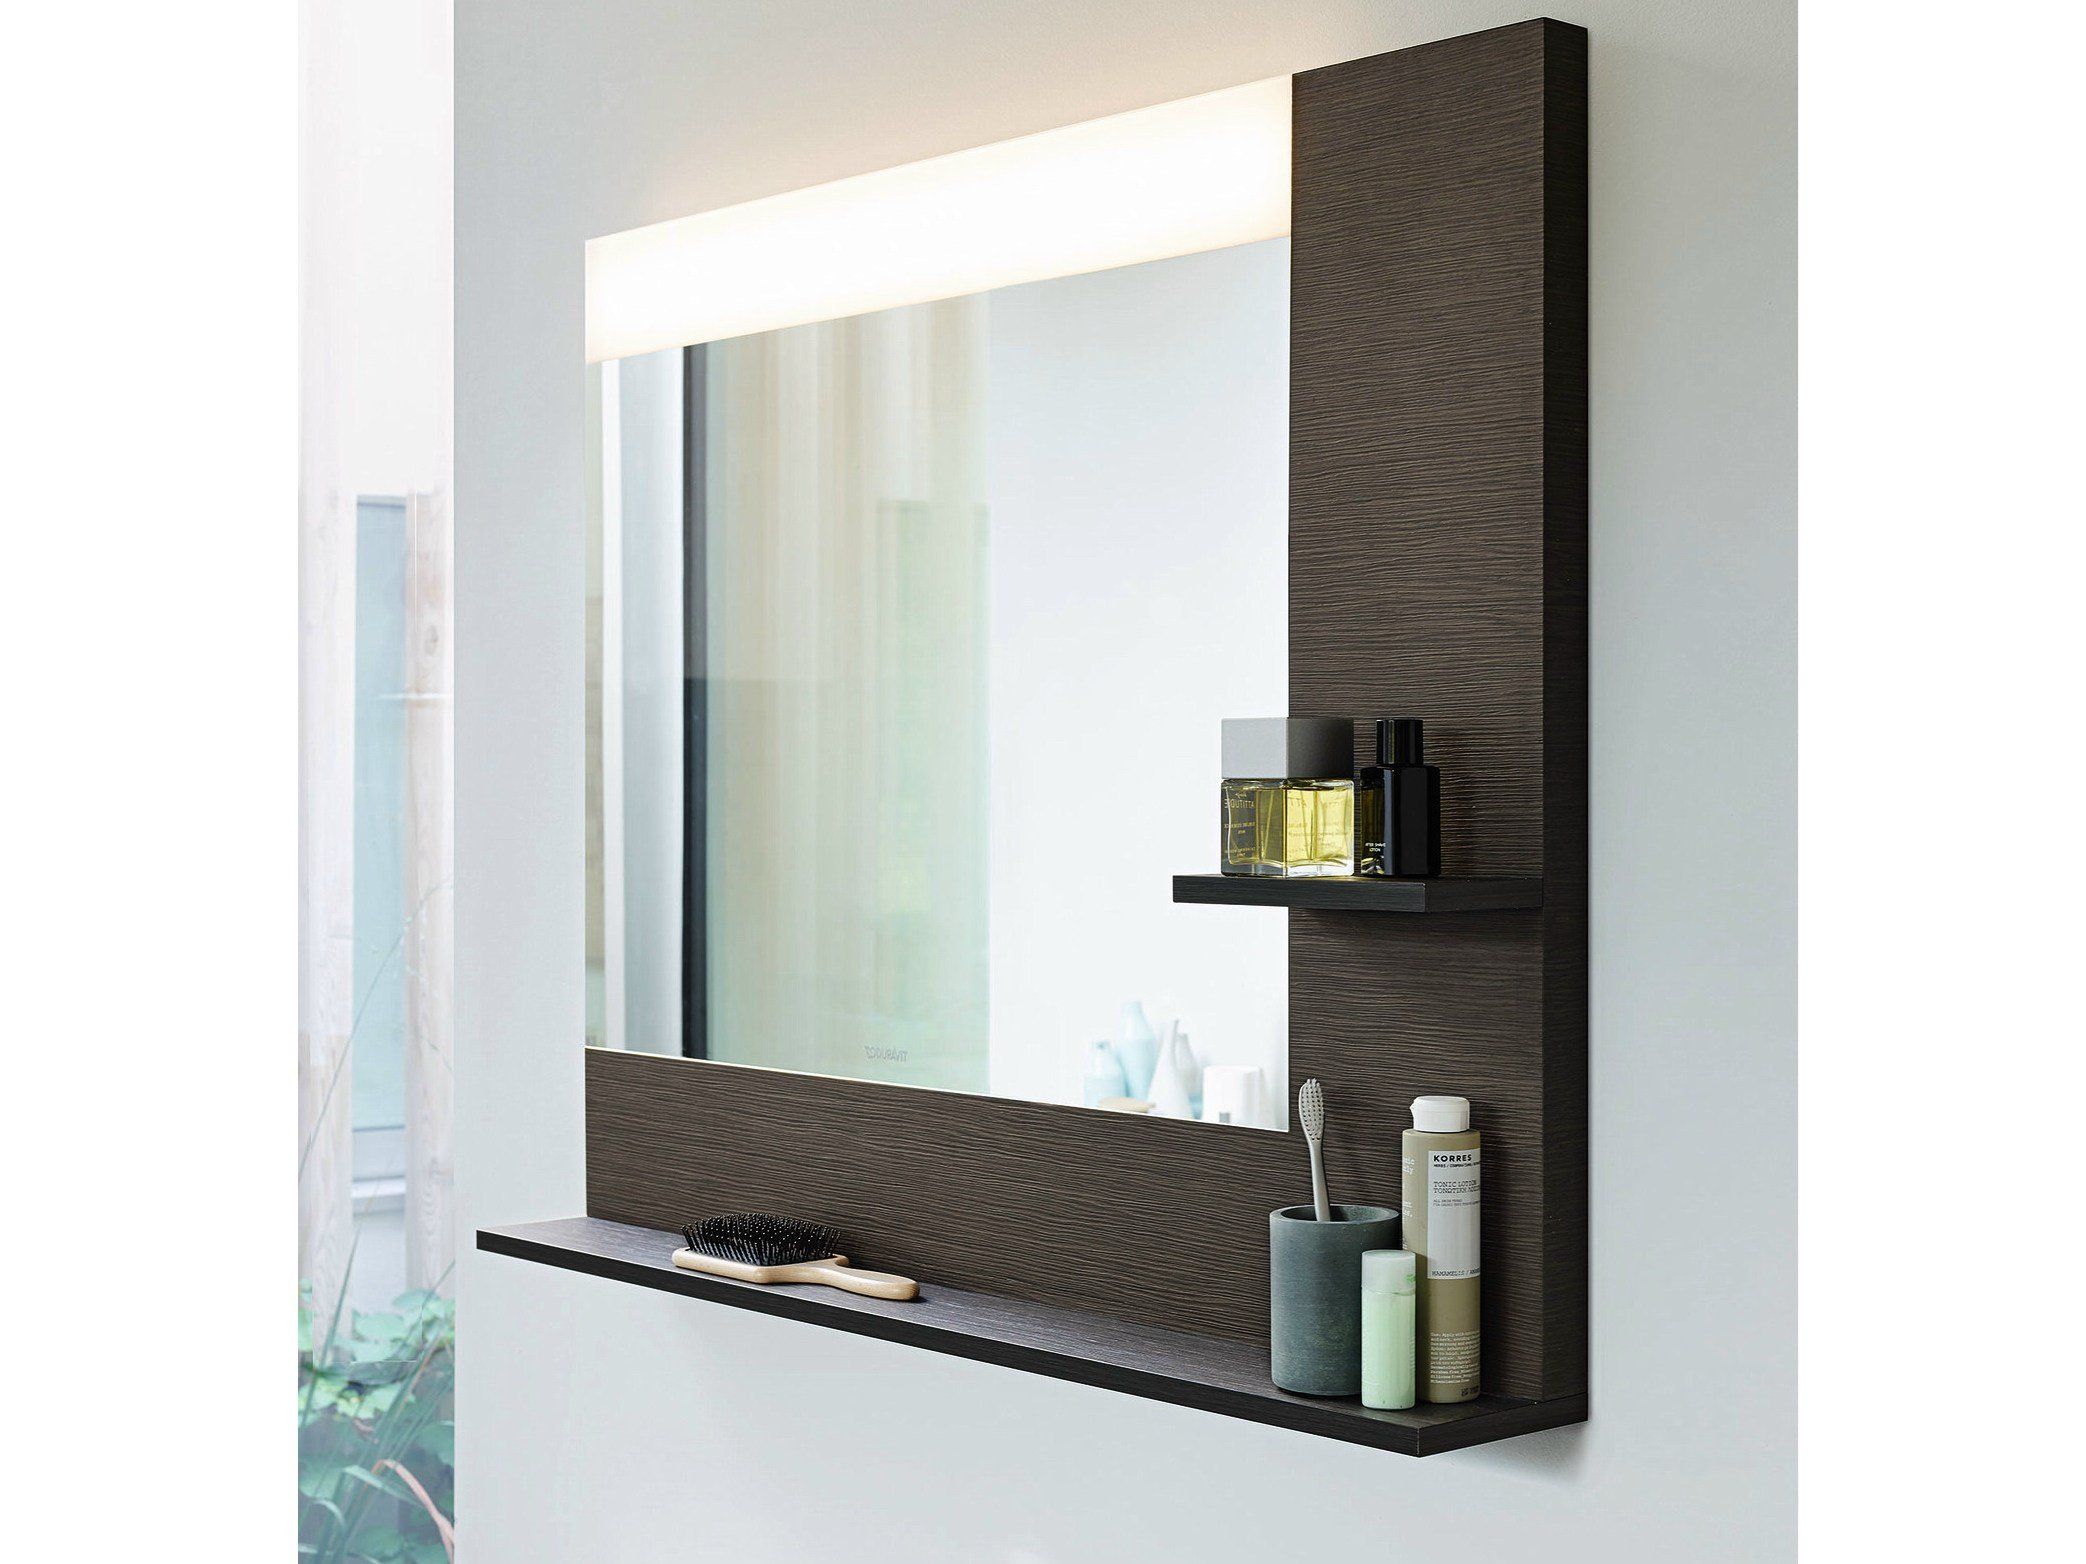 Vero mirror with integrated lighting by duravit design for Duravit salle de bain